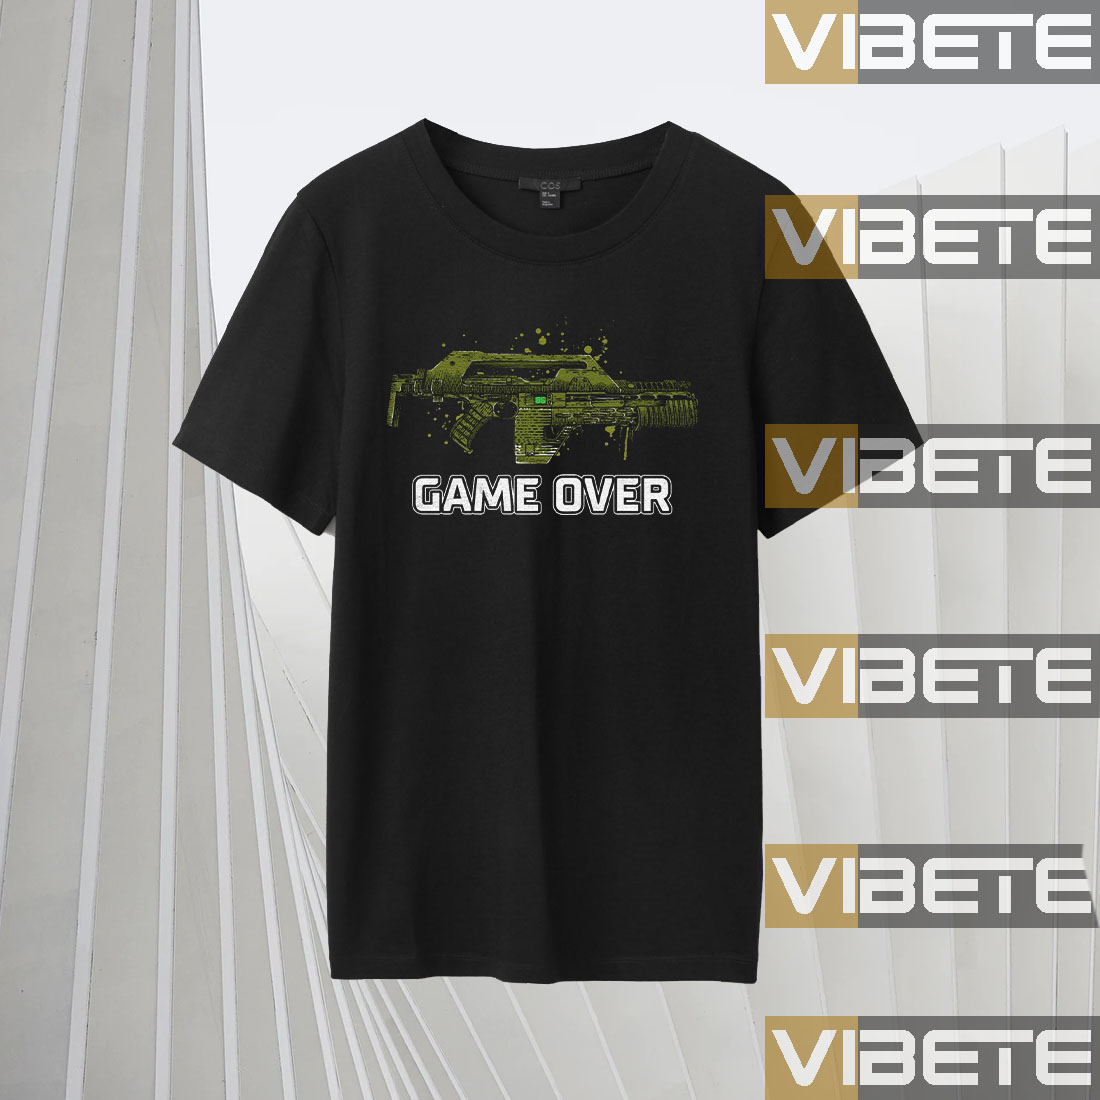 GAME OVER PLAYER T-Shirt